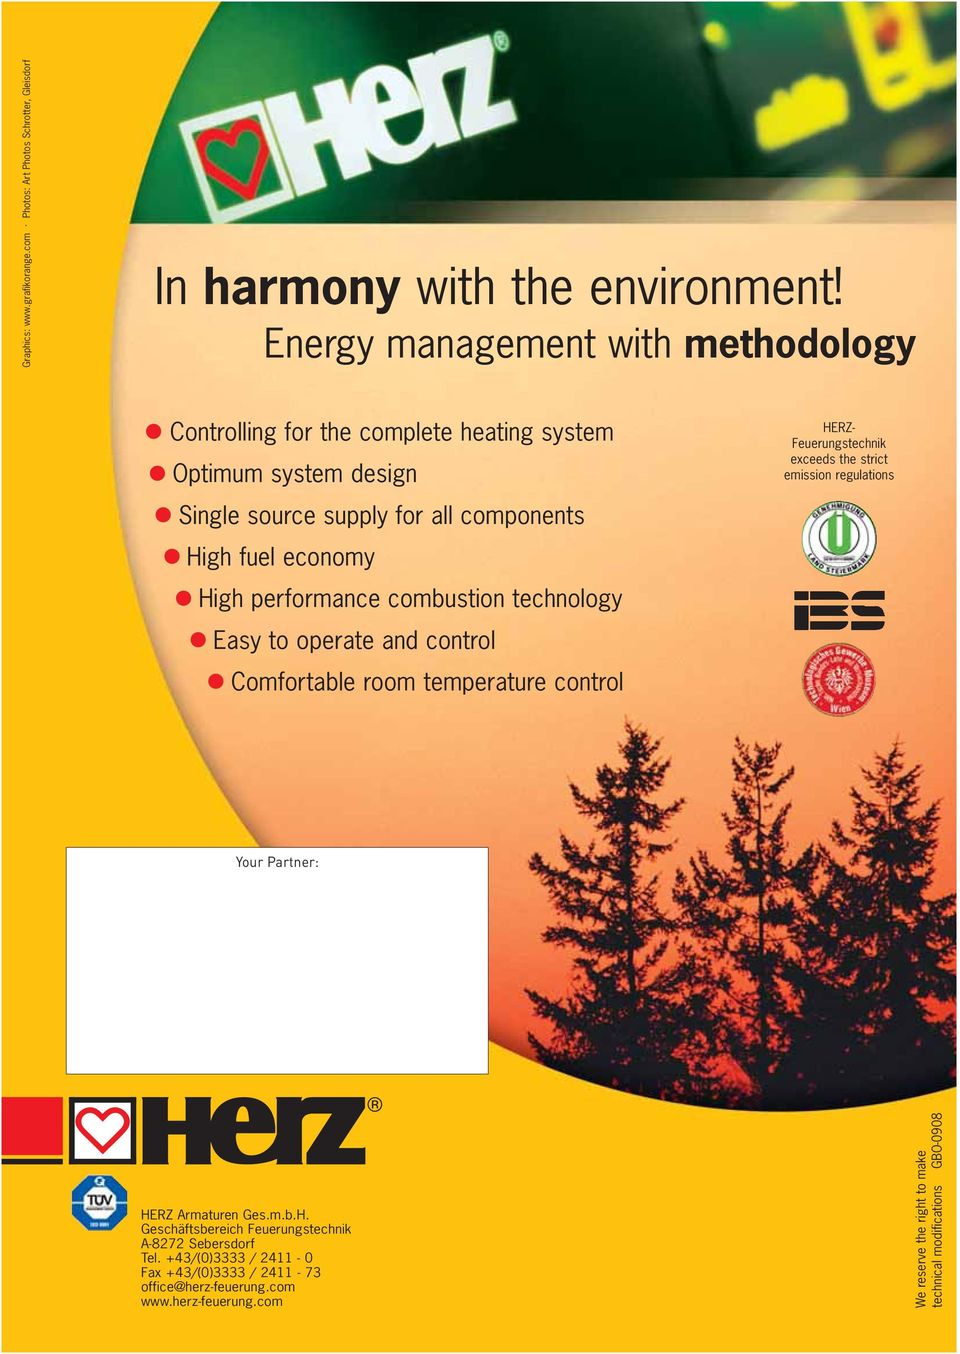 performance combustion technology Easy to operate and control Comfortable room temperature control HERZ- Feuerungstechnik exceeds the strict emission regulations Your